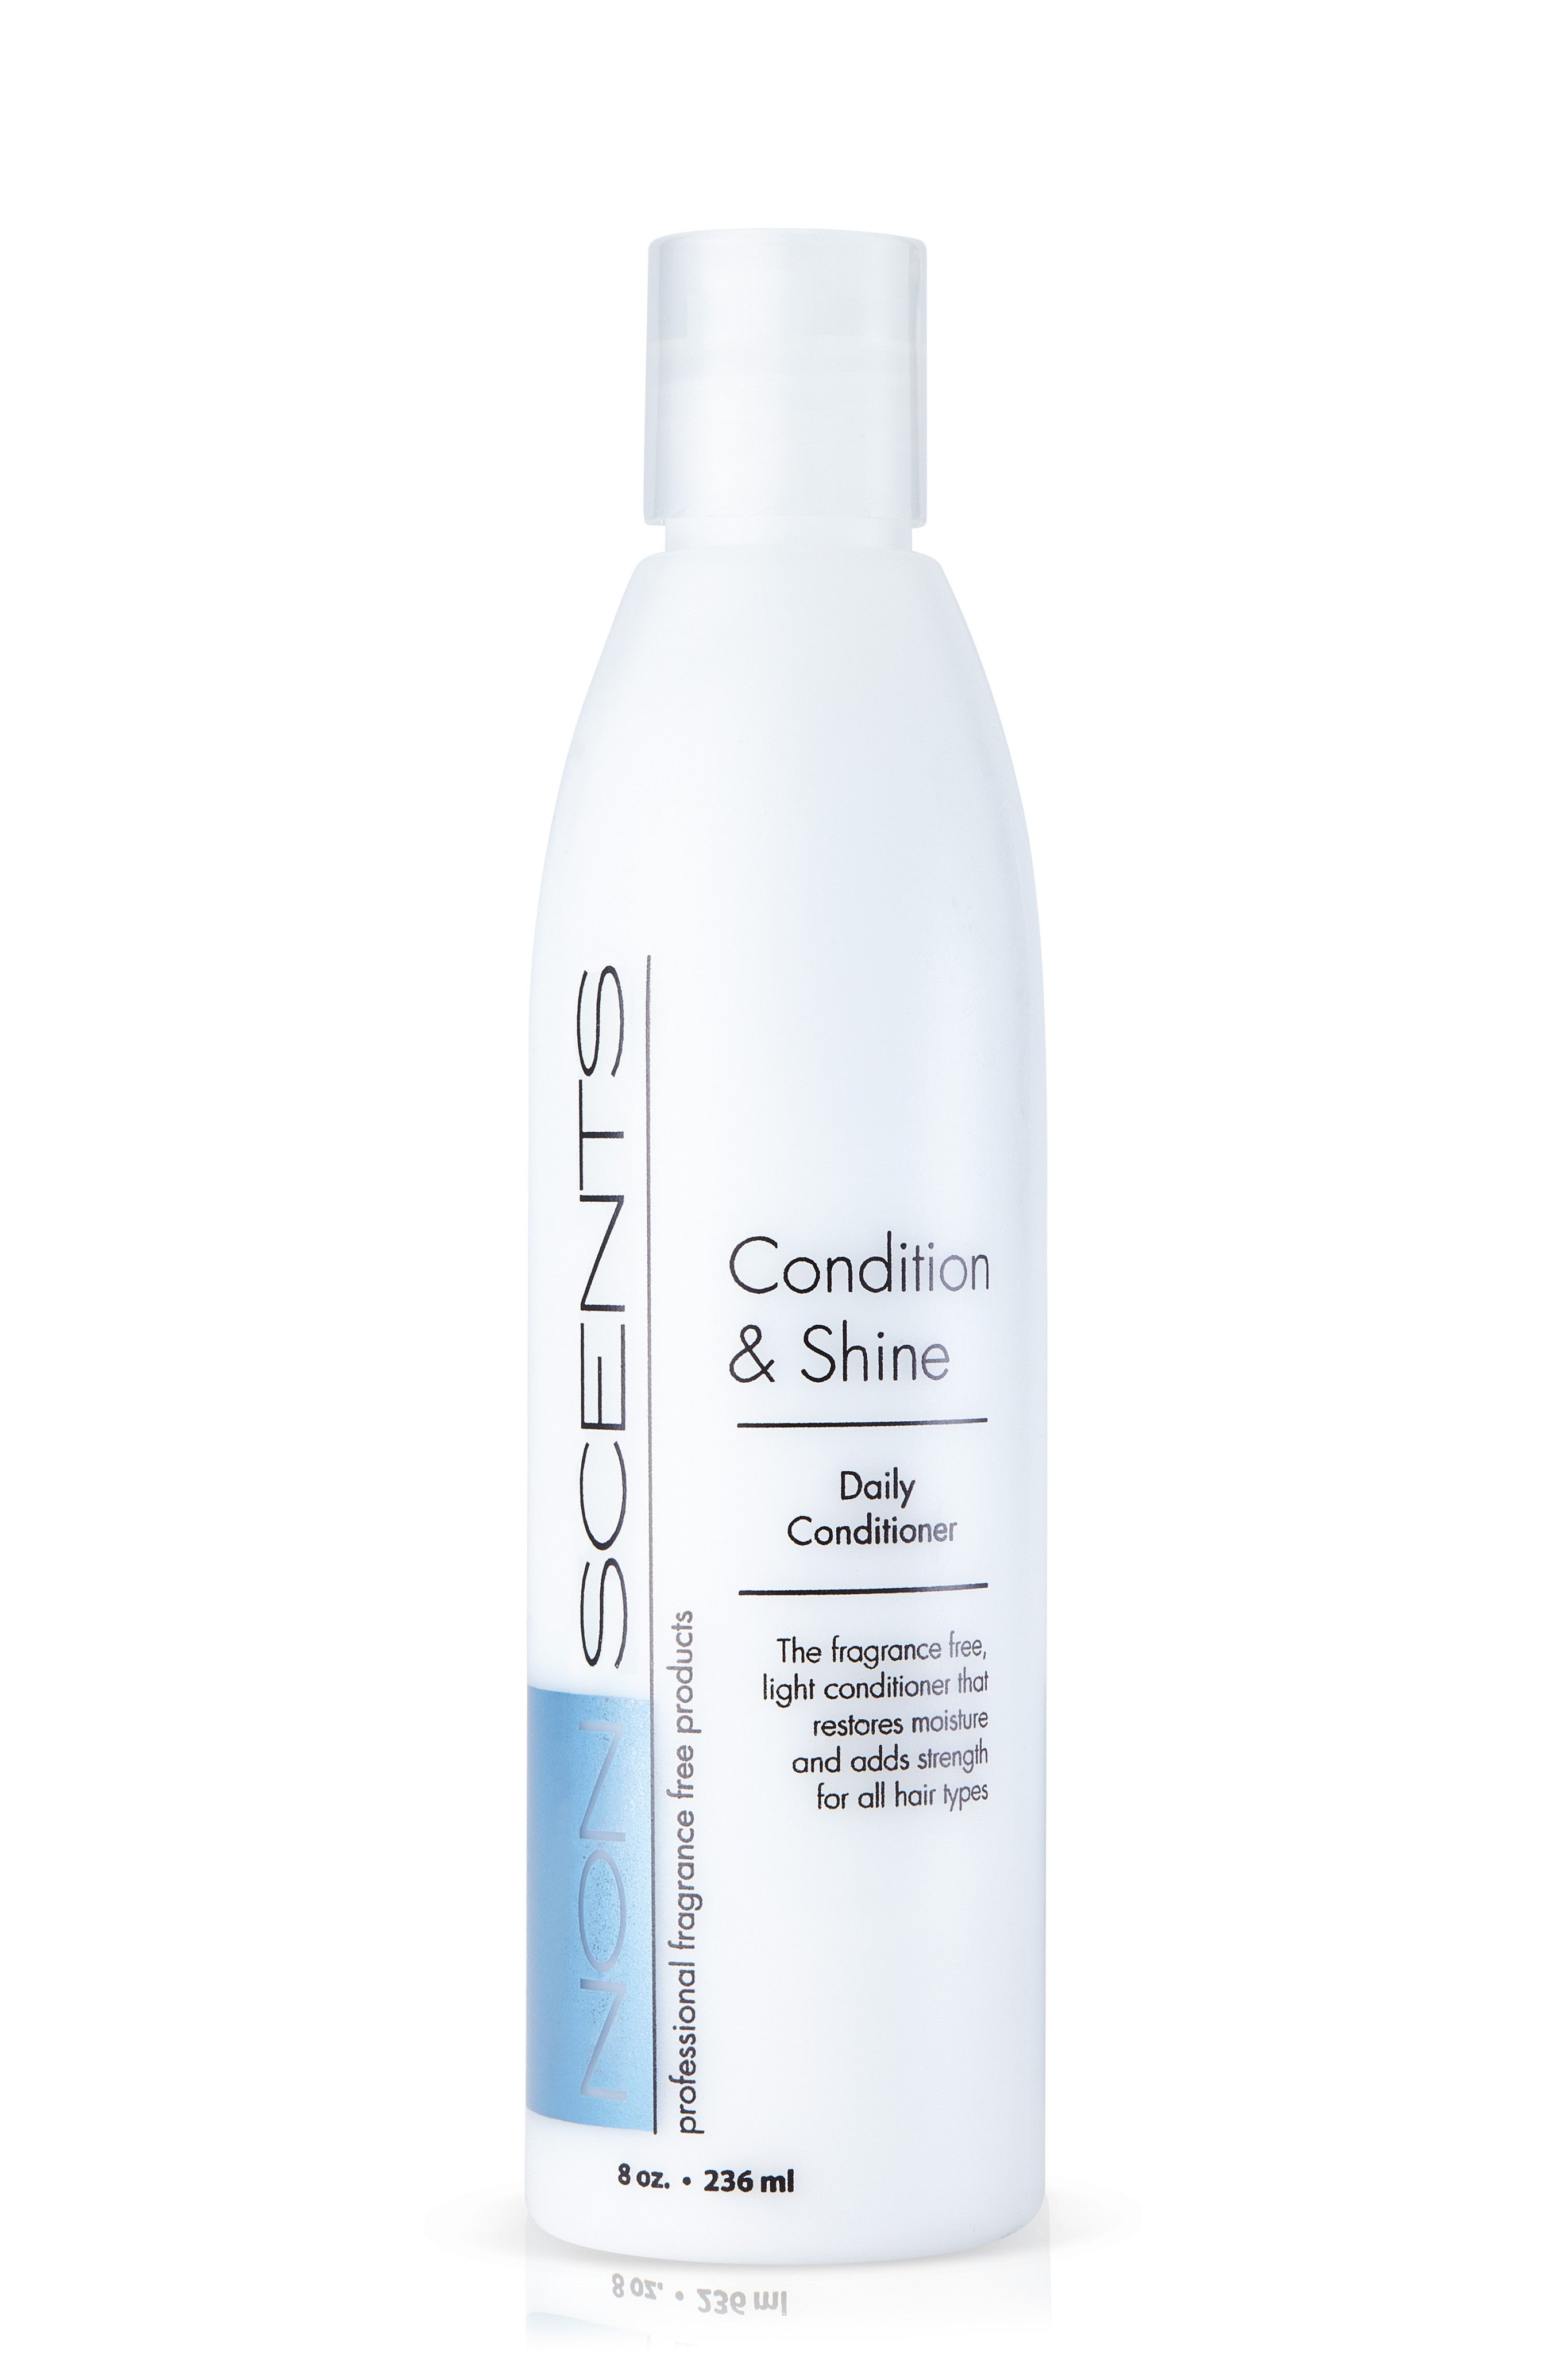 Nonscents Condition & Shine Unscented Conditioner